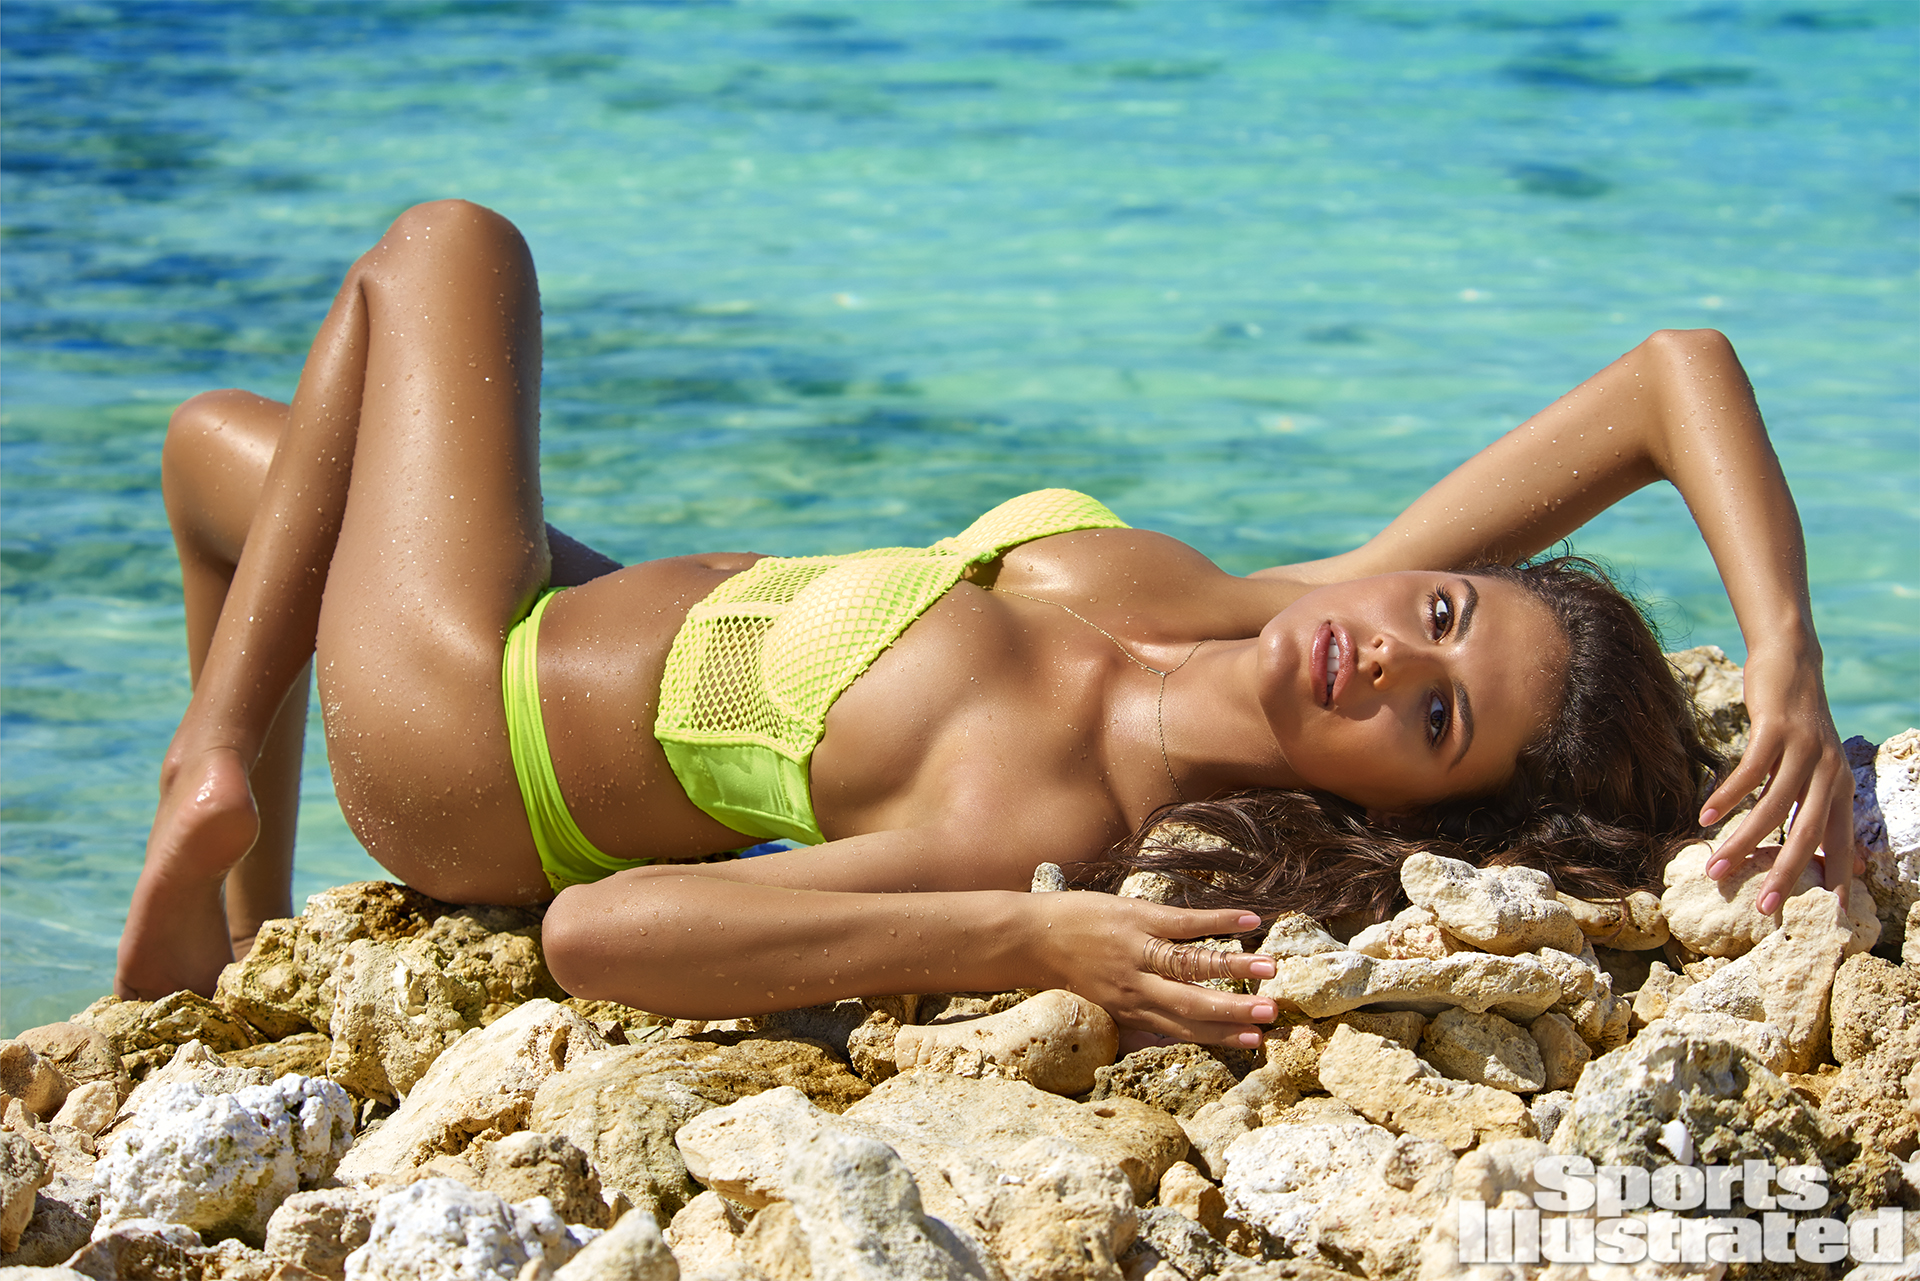 Bo Krsmanovic was photographed by Yu Tsai in The Islands Of Tahiti. Swimsuit by Susan Holmes Swimwear.